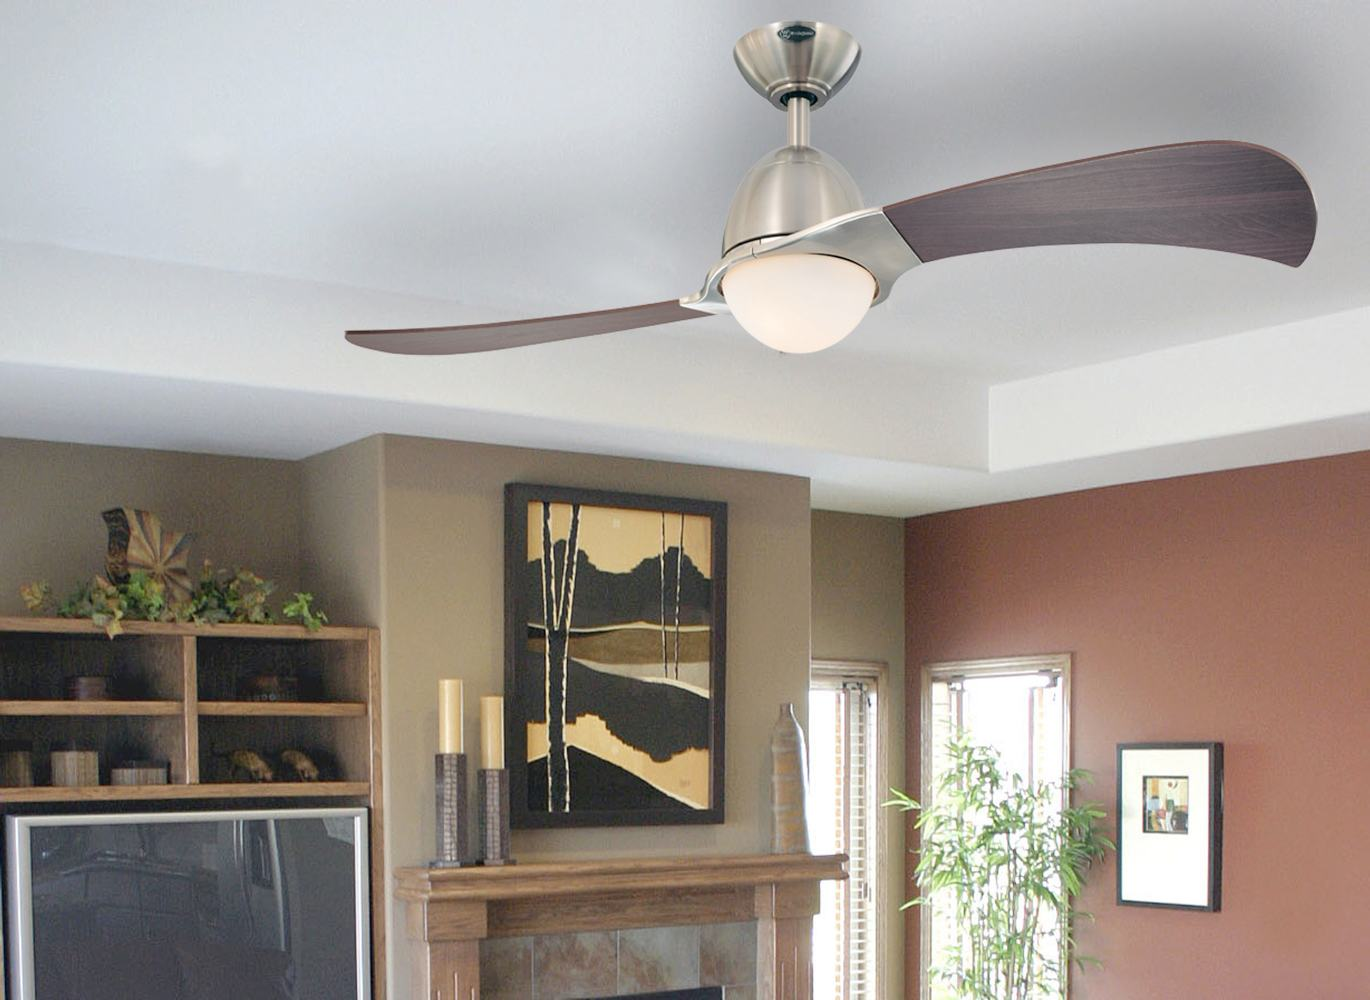 Westinghouse 7216100 solana two light 48 inch two blade indoor ceiling fan brushed nickel with - Westinghouse and living ...